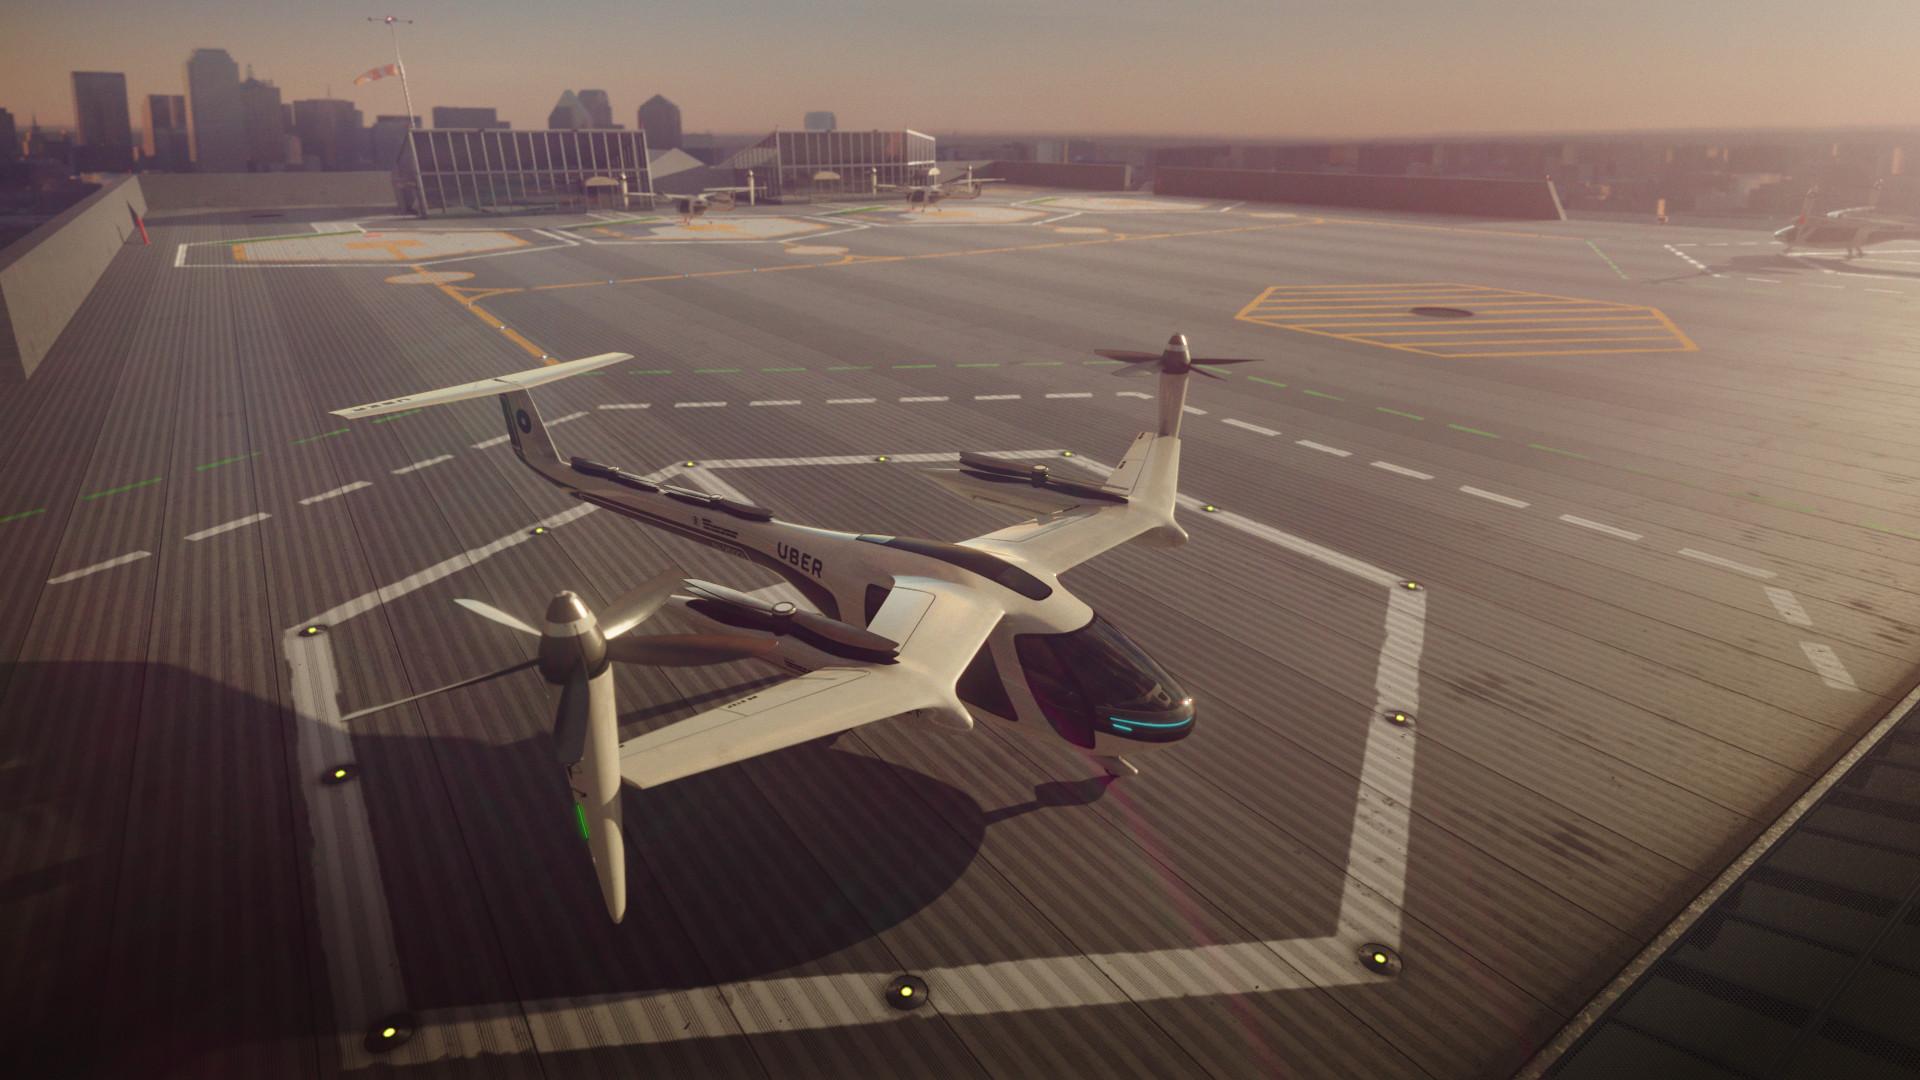 Ubers Flying Cars Could Arrive In LA By 2020 And Heres What Itll Be Like To Ride One